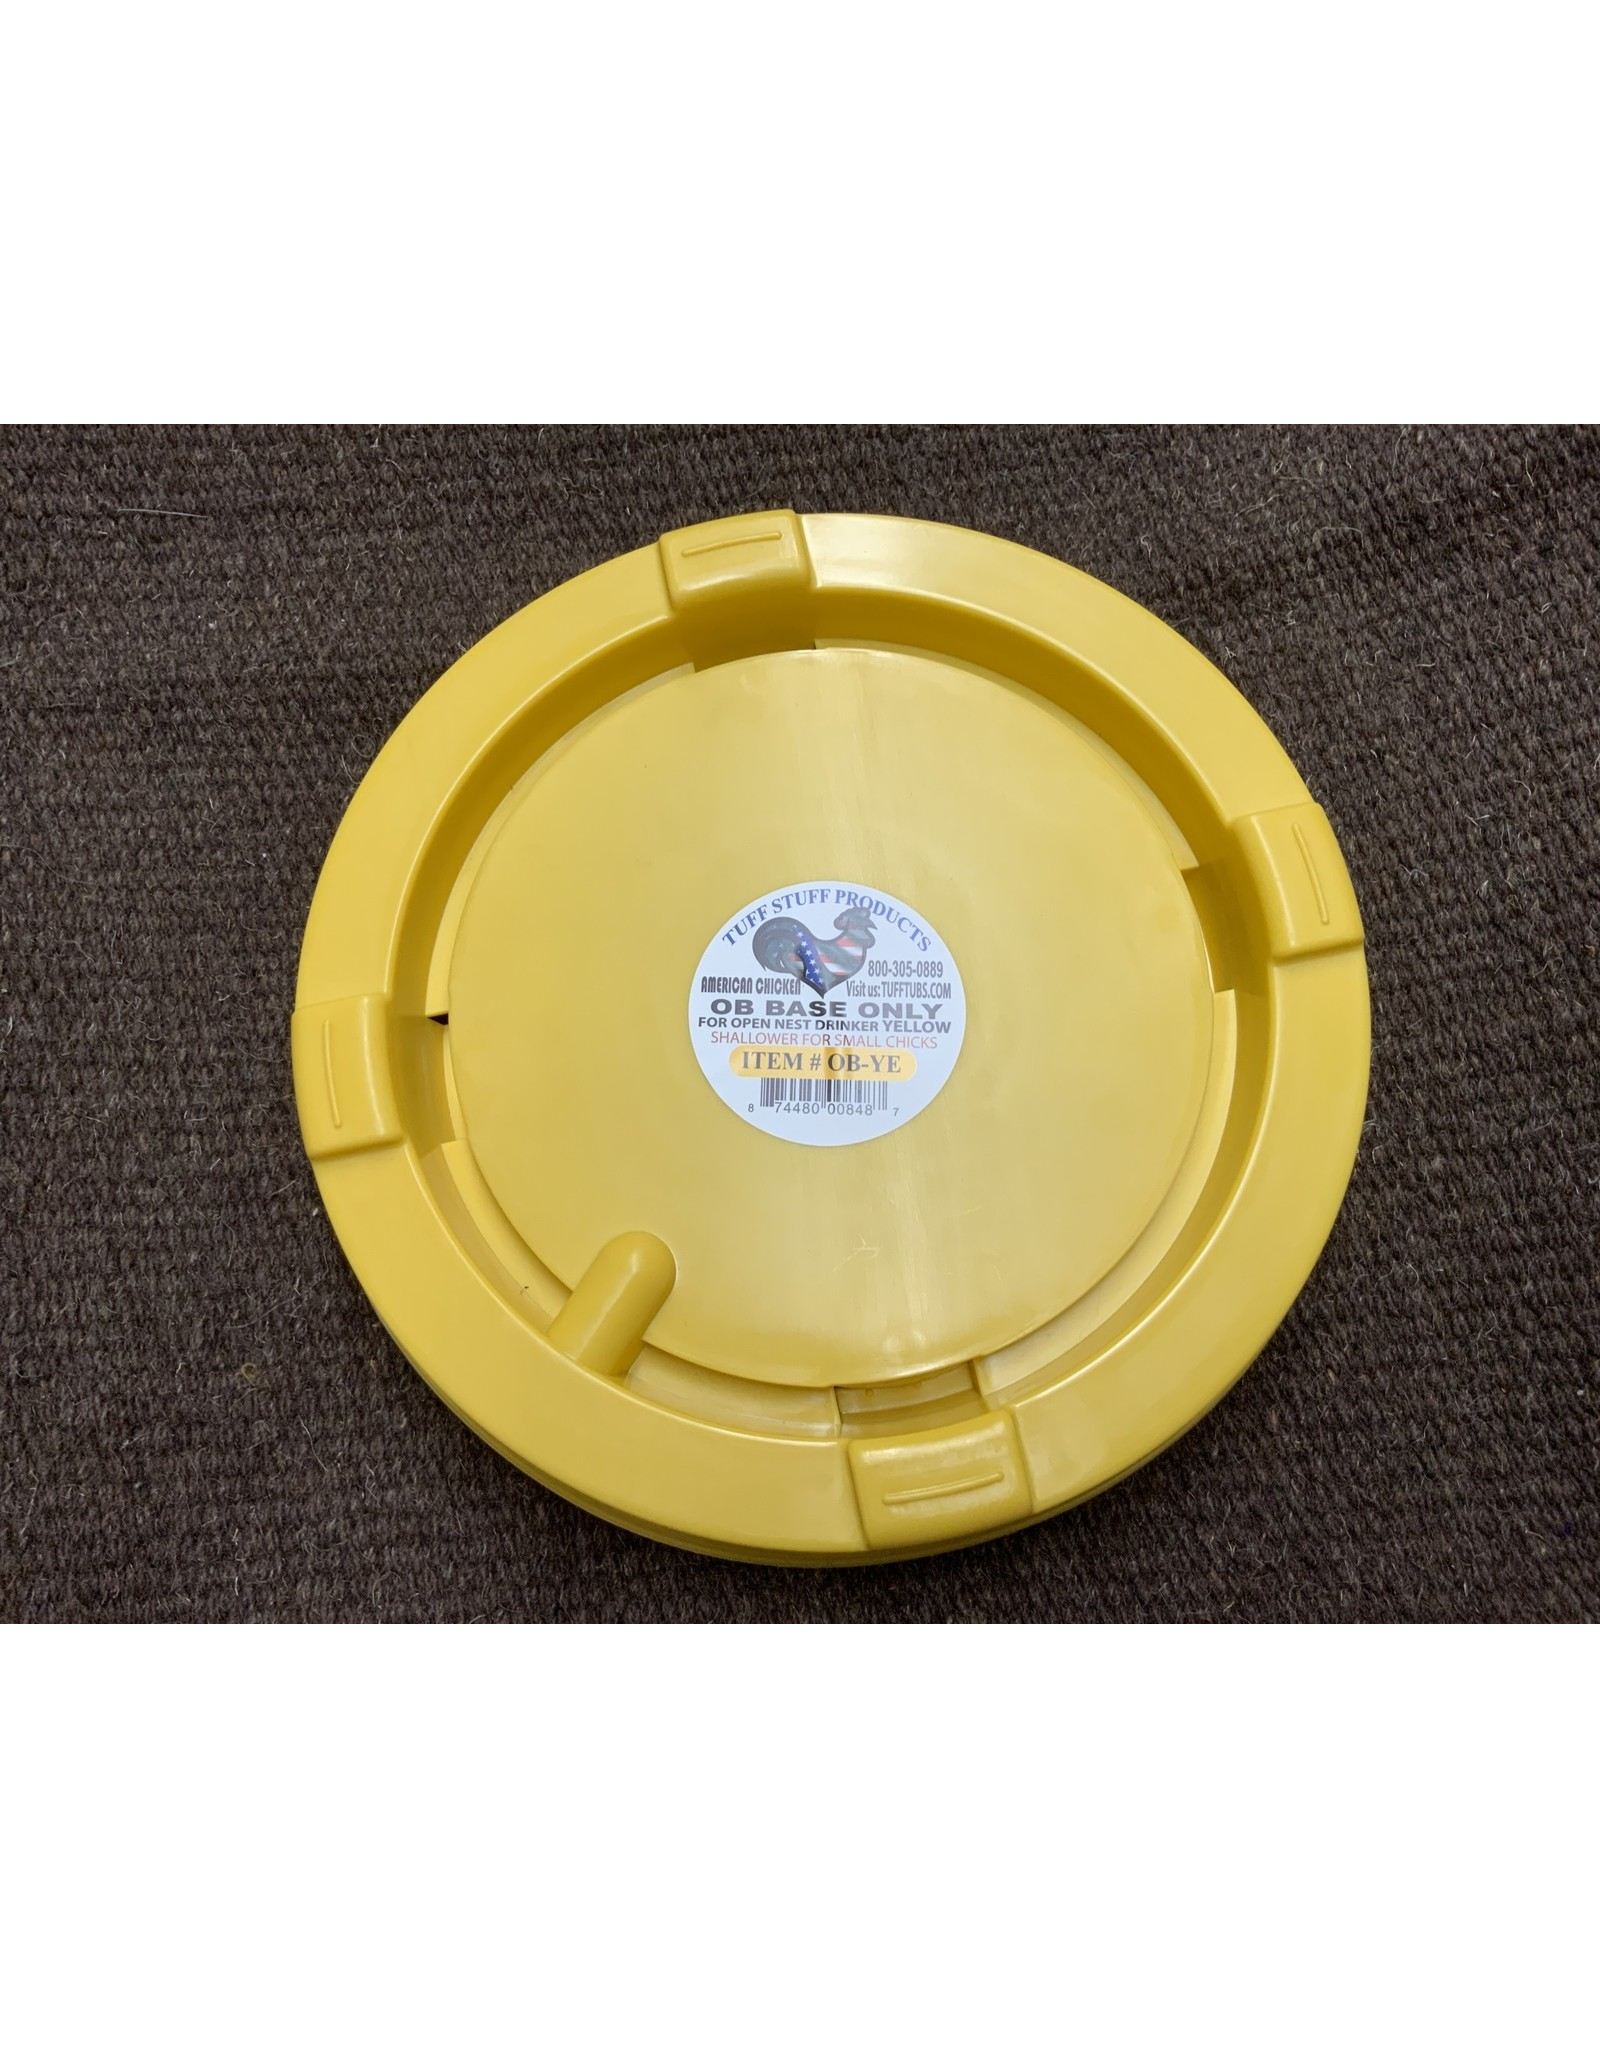 Base Only - For open nest drinker - small chicks (Tuff Stuff Products) # OB-YE